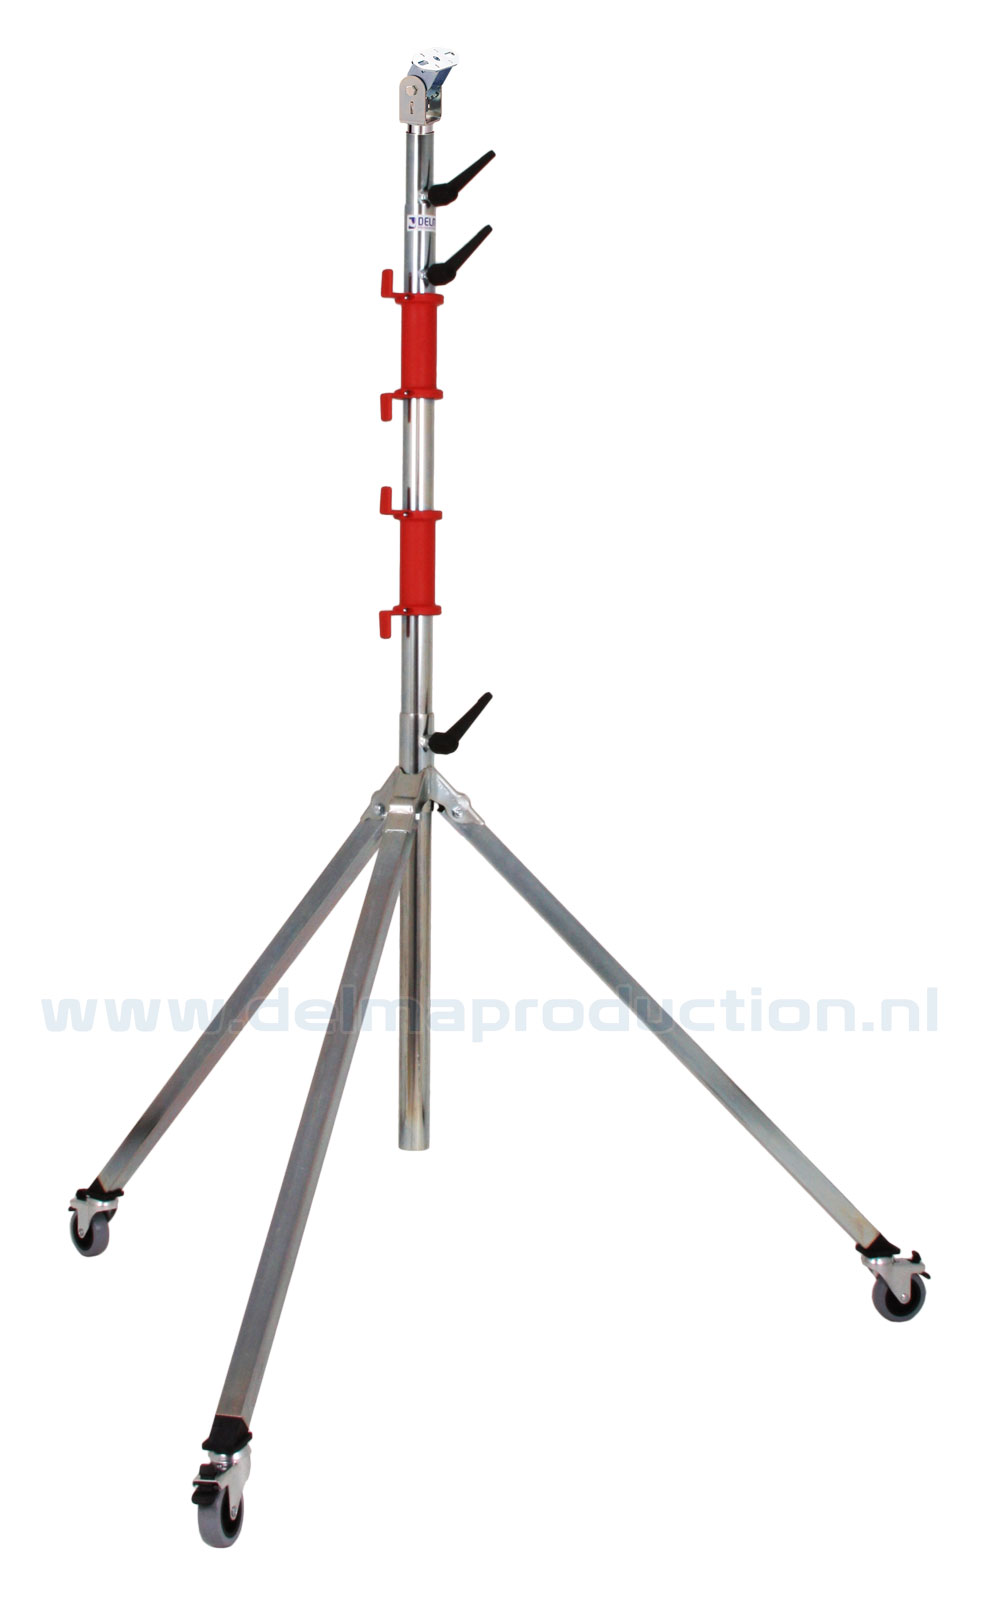 Tripod worklight stand 4-part, mobile, quick adjustment